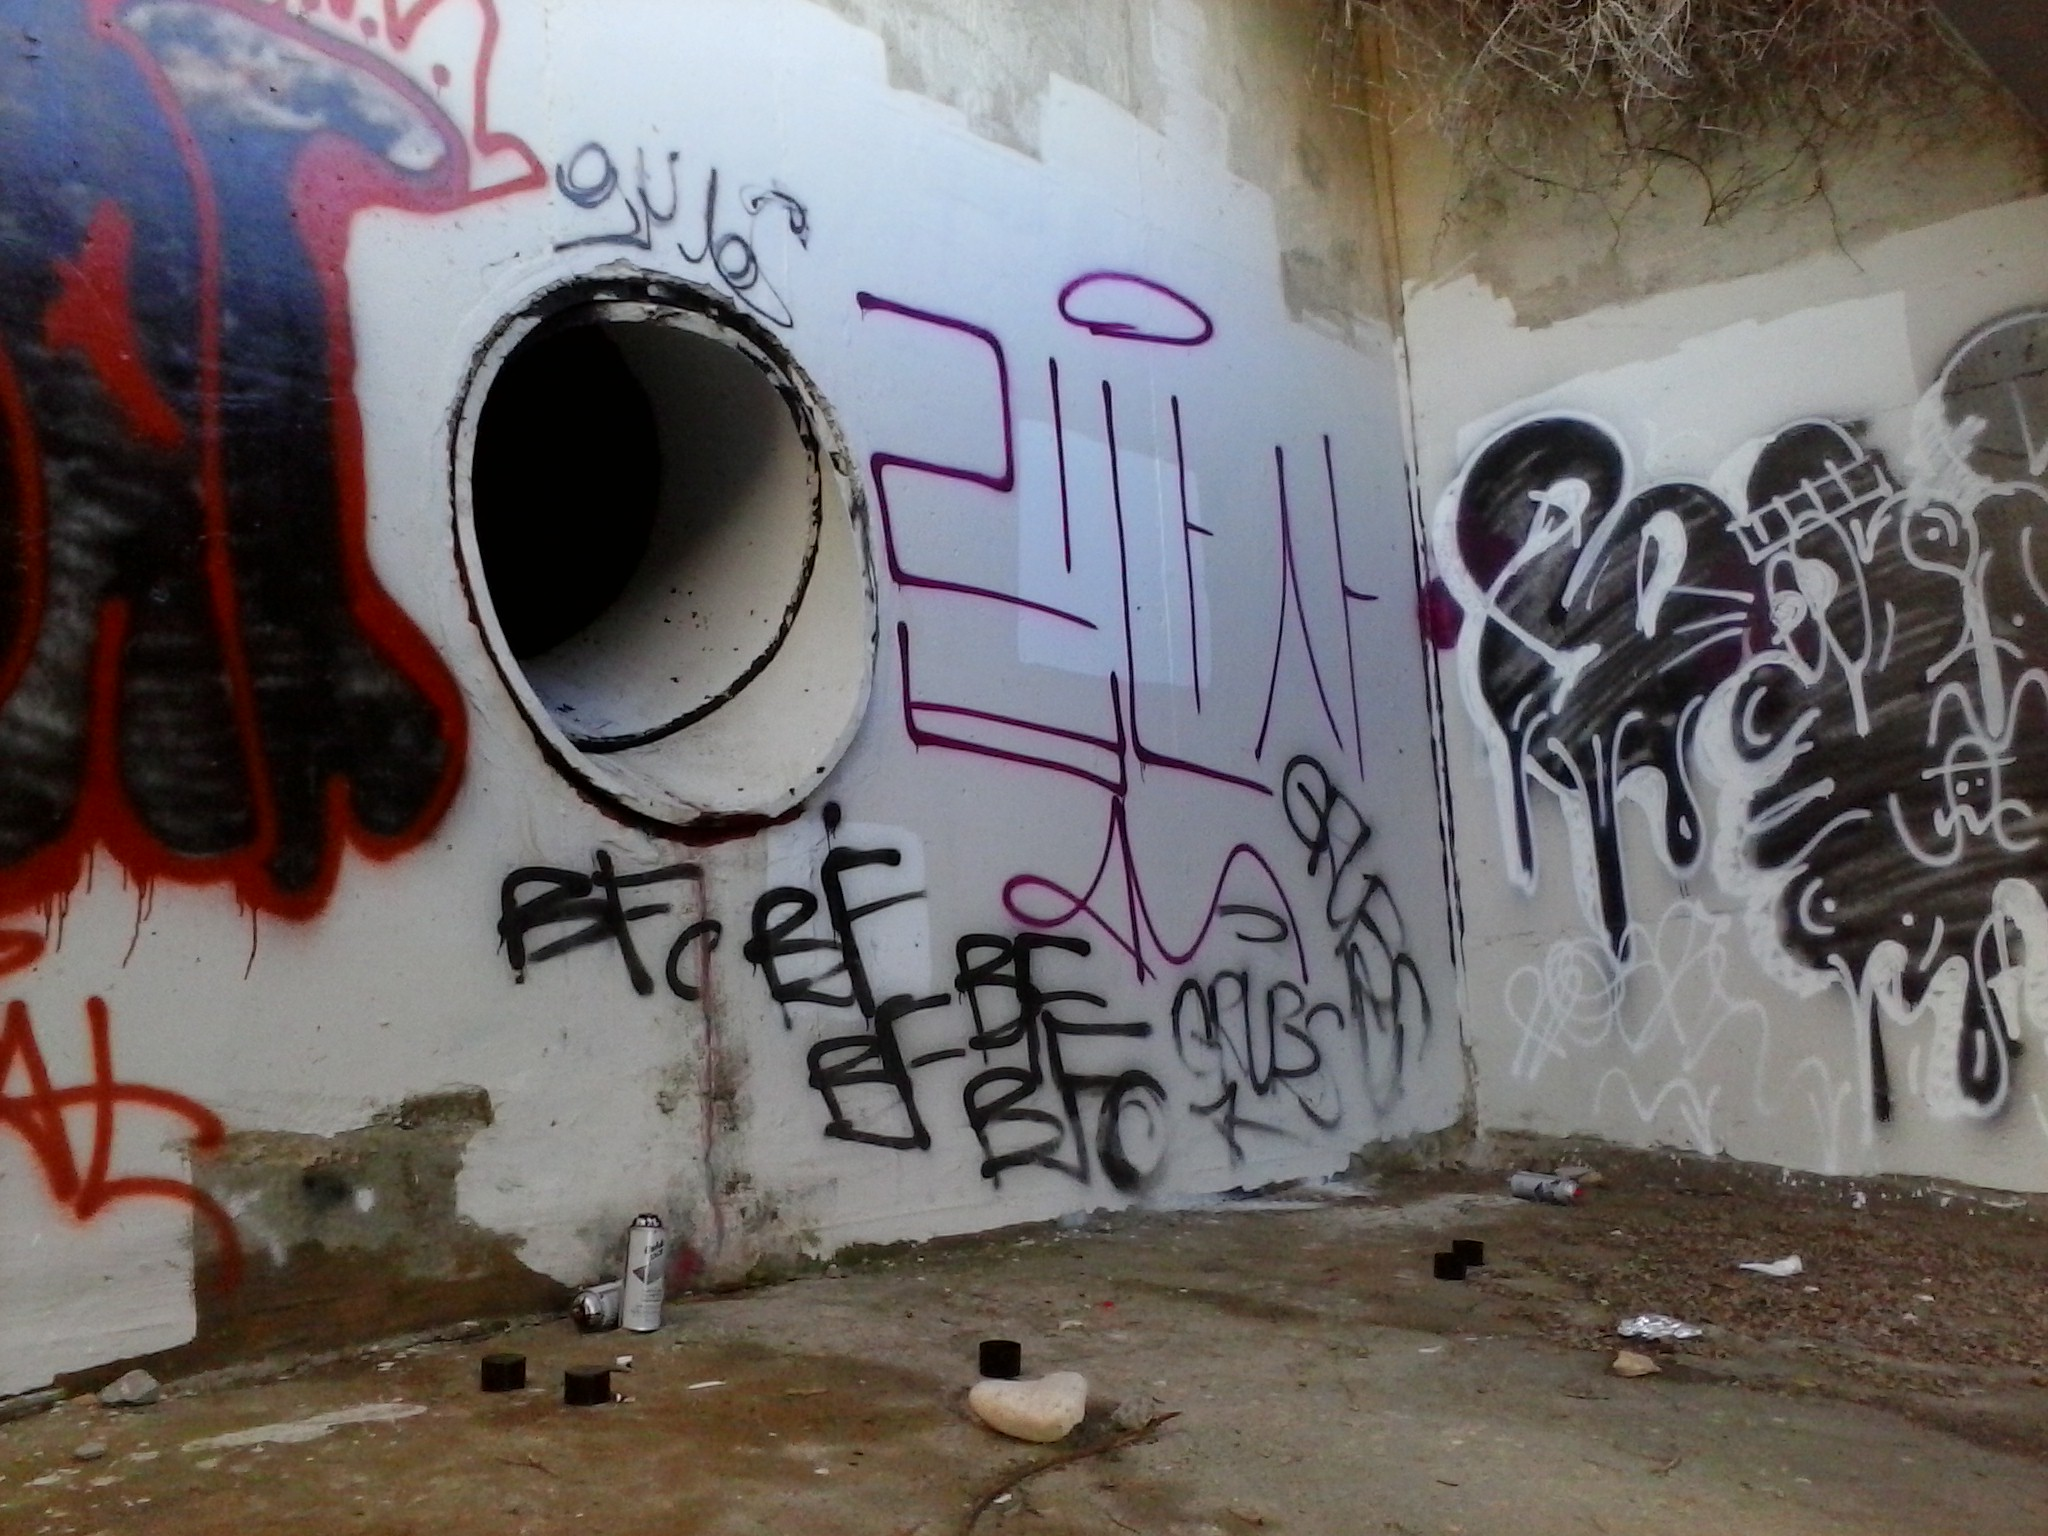 PVE Bluff Cove North Storm Drain Graffiti 09-30-2014